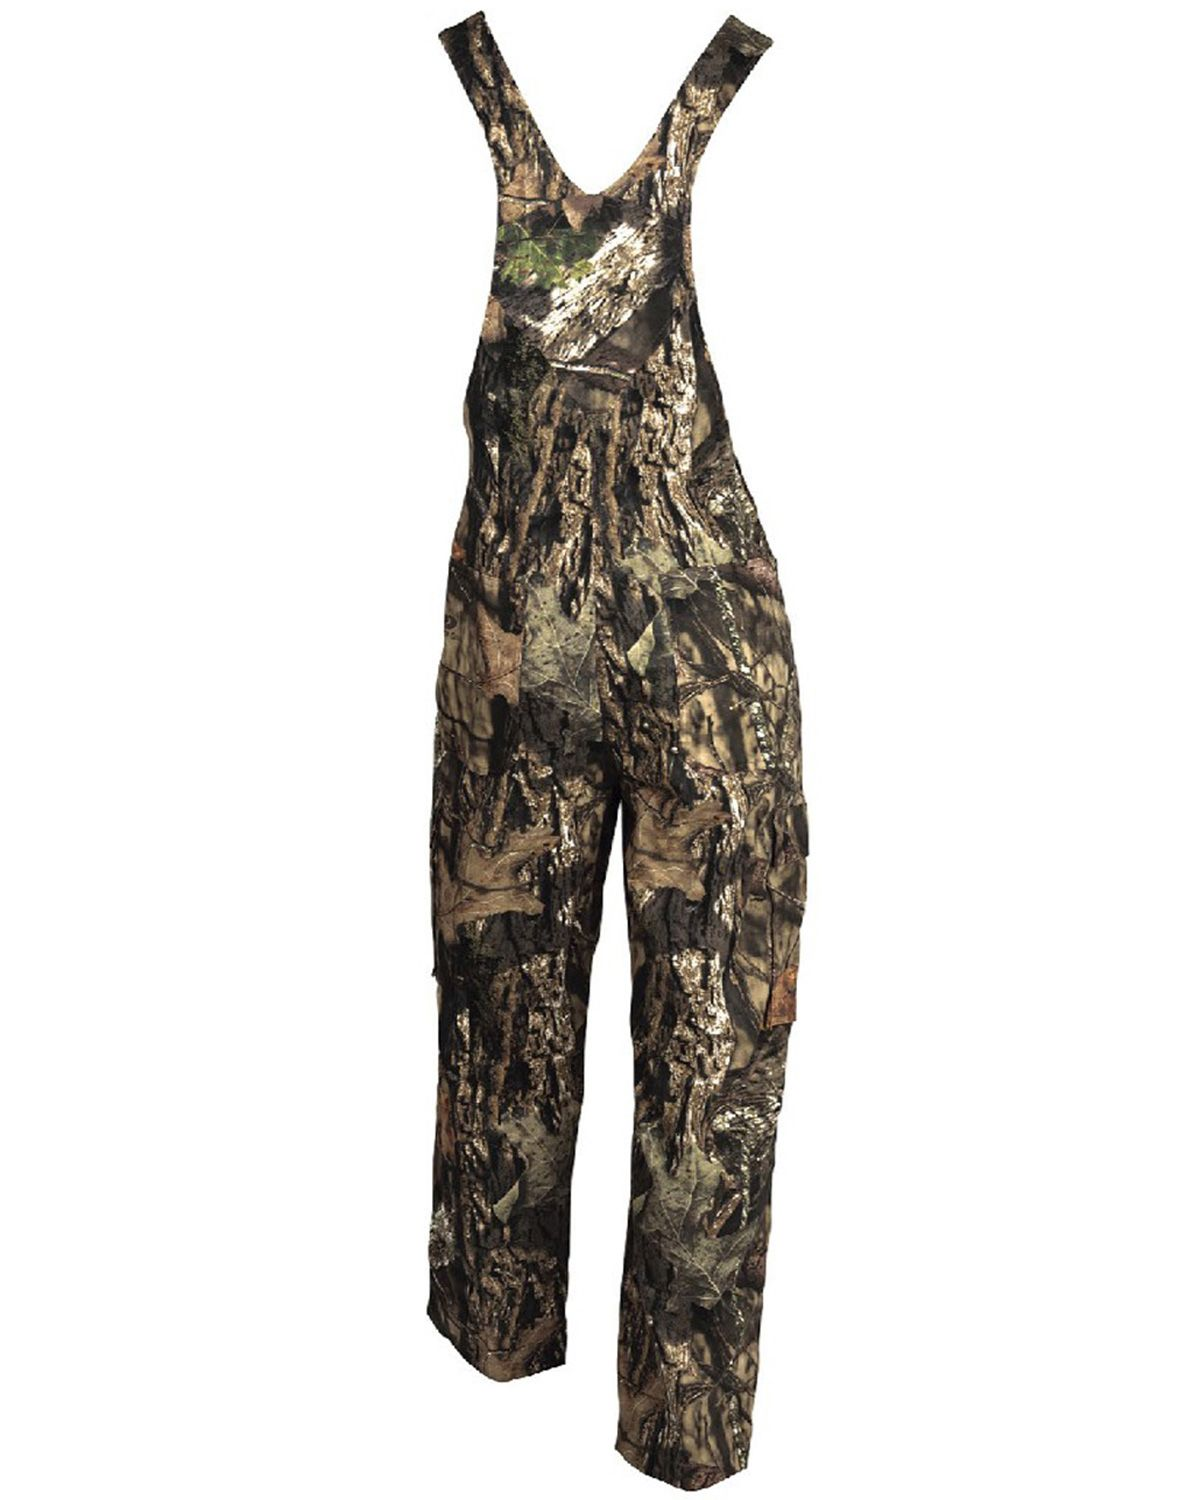 8da746ad317d9 Walls Outdoor 94051 Unisex Hunting Non-Insulated Bib Overall